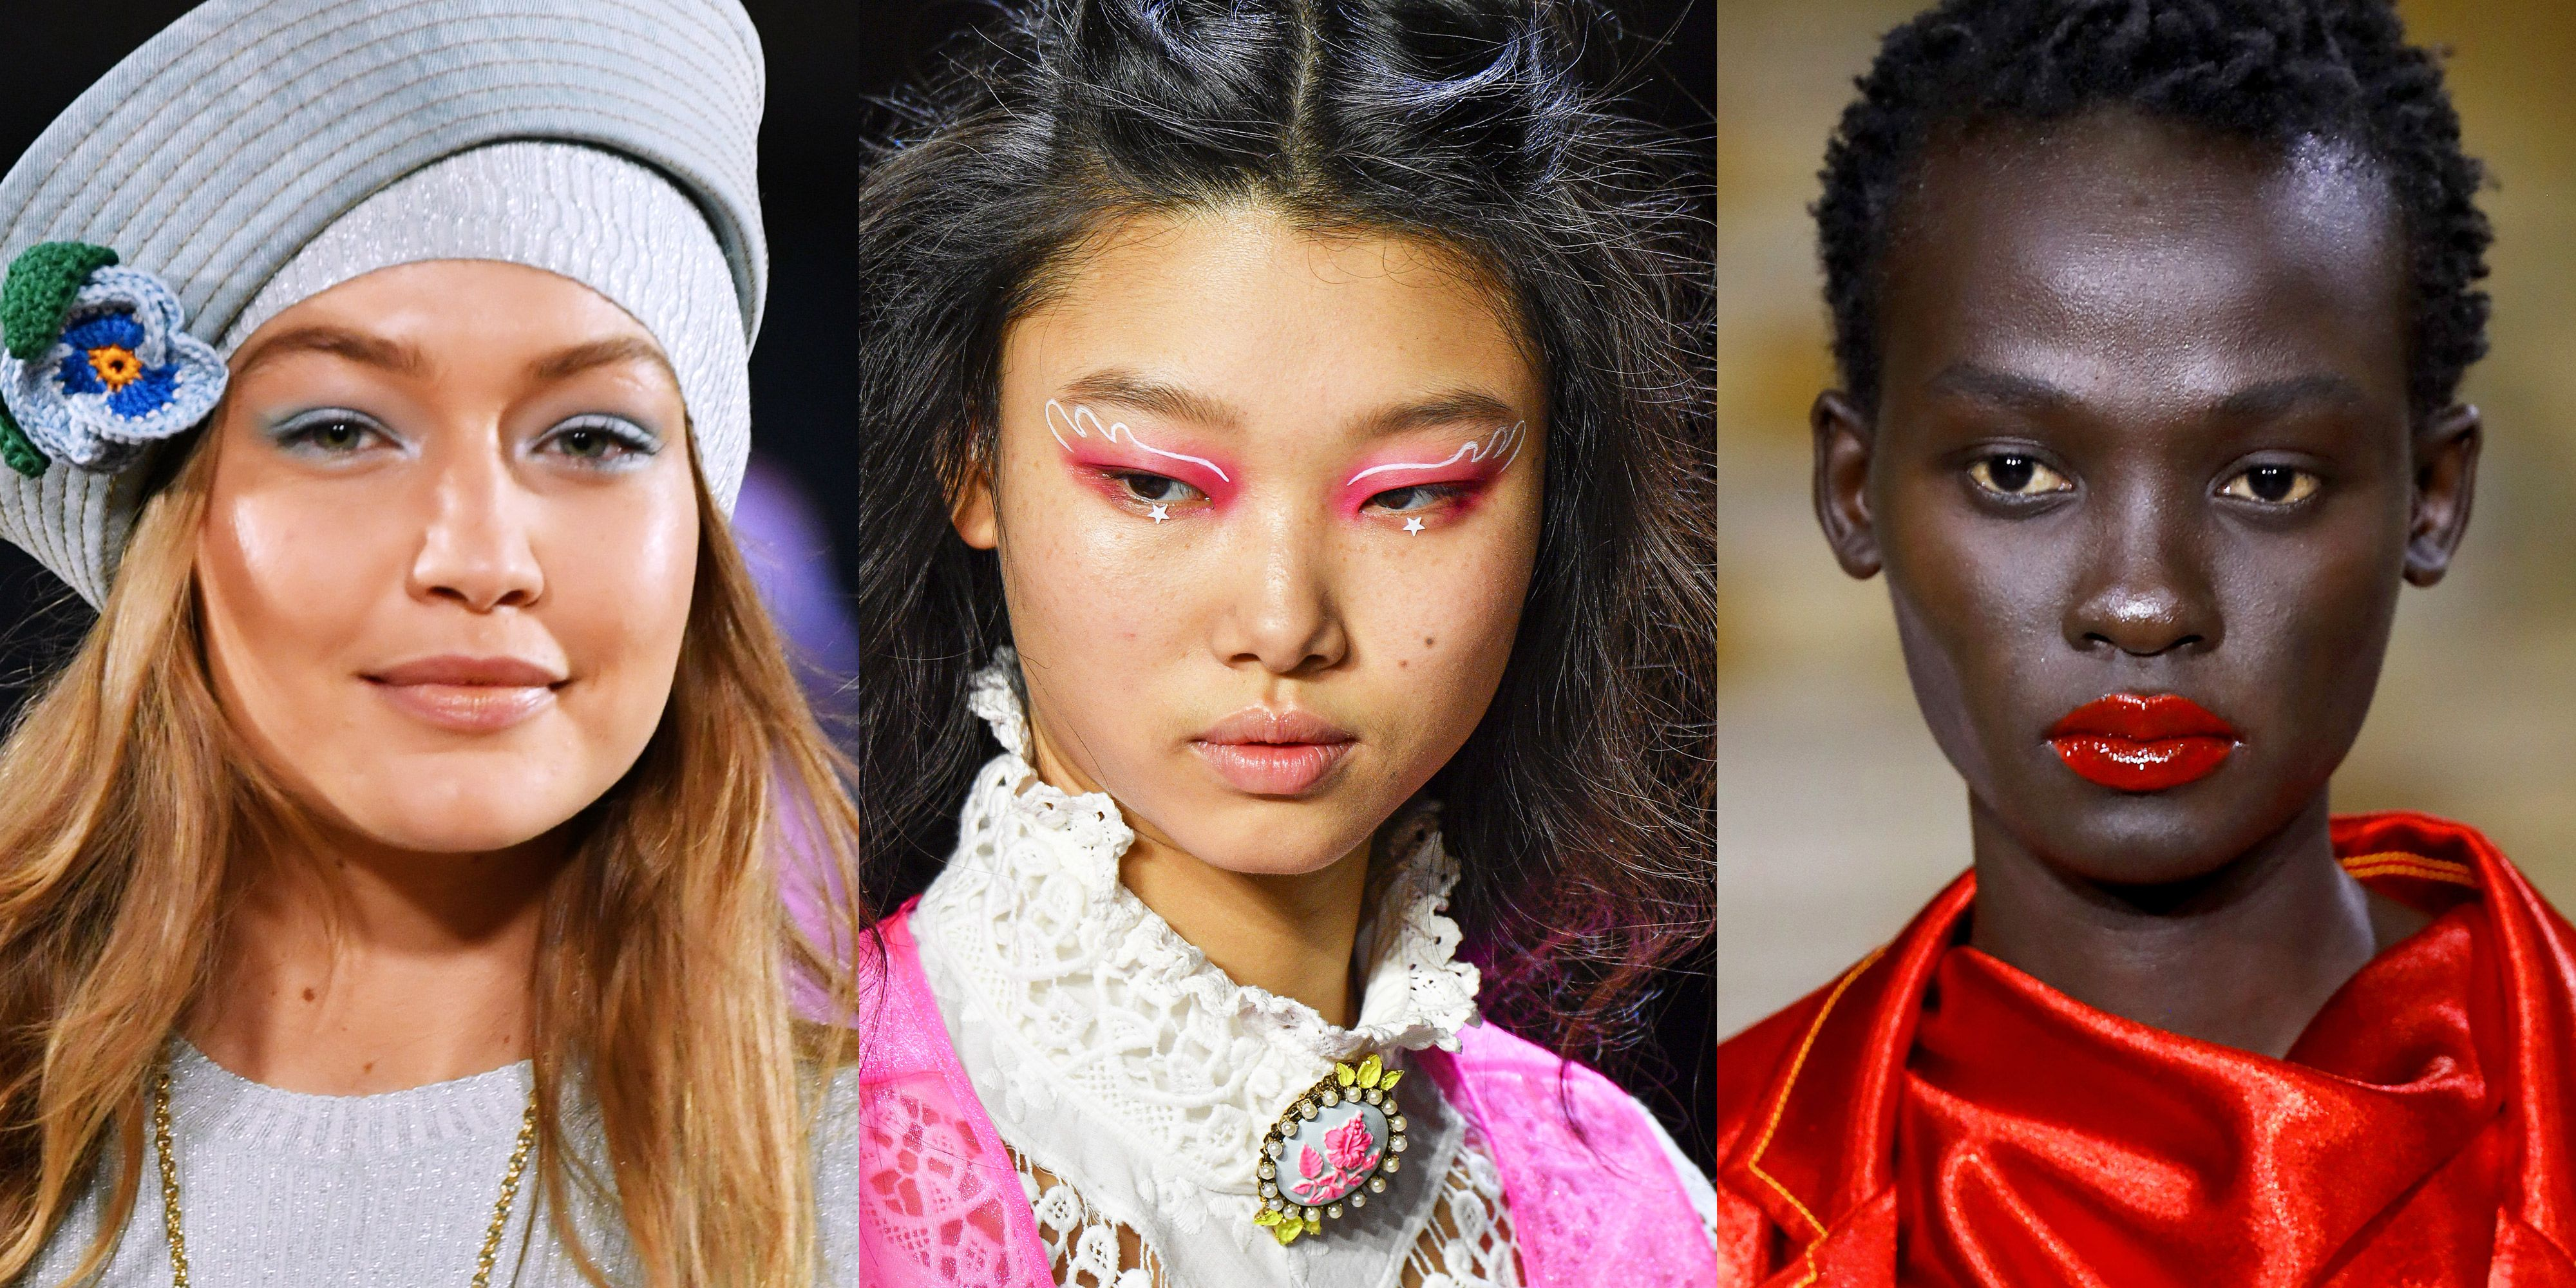 Exciting Spring 2020 Makeup Looks from the Runways